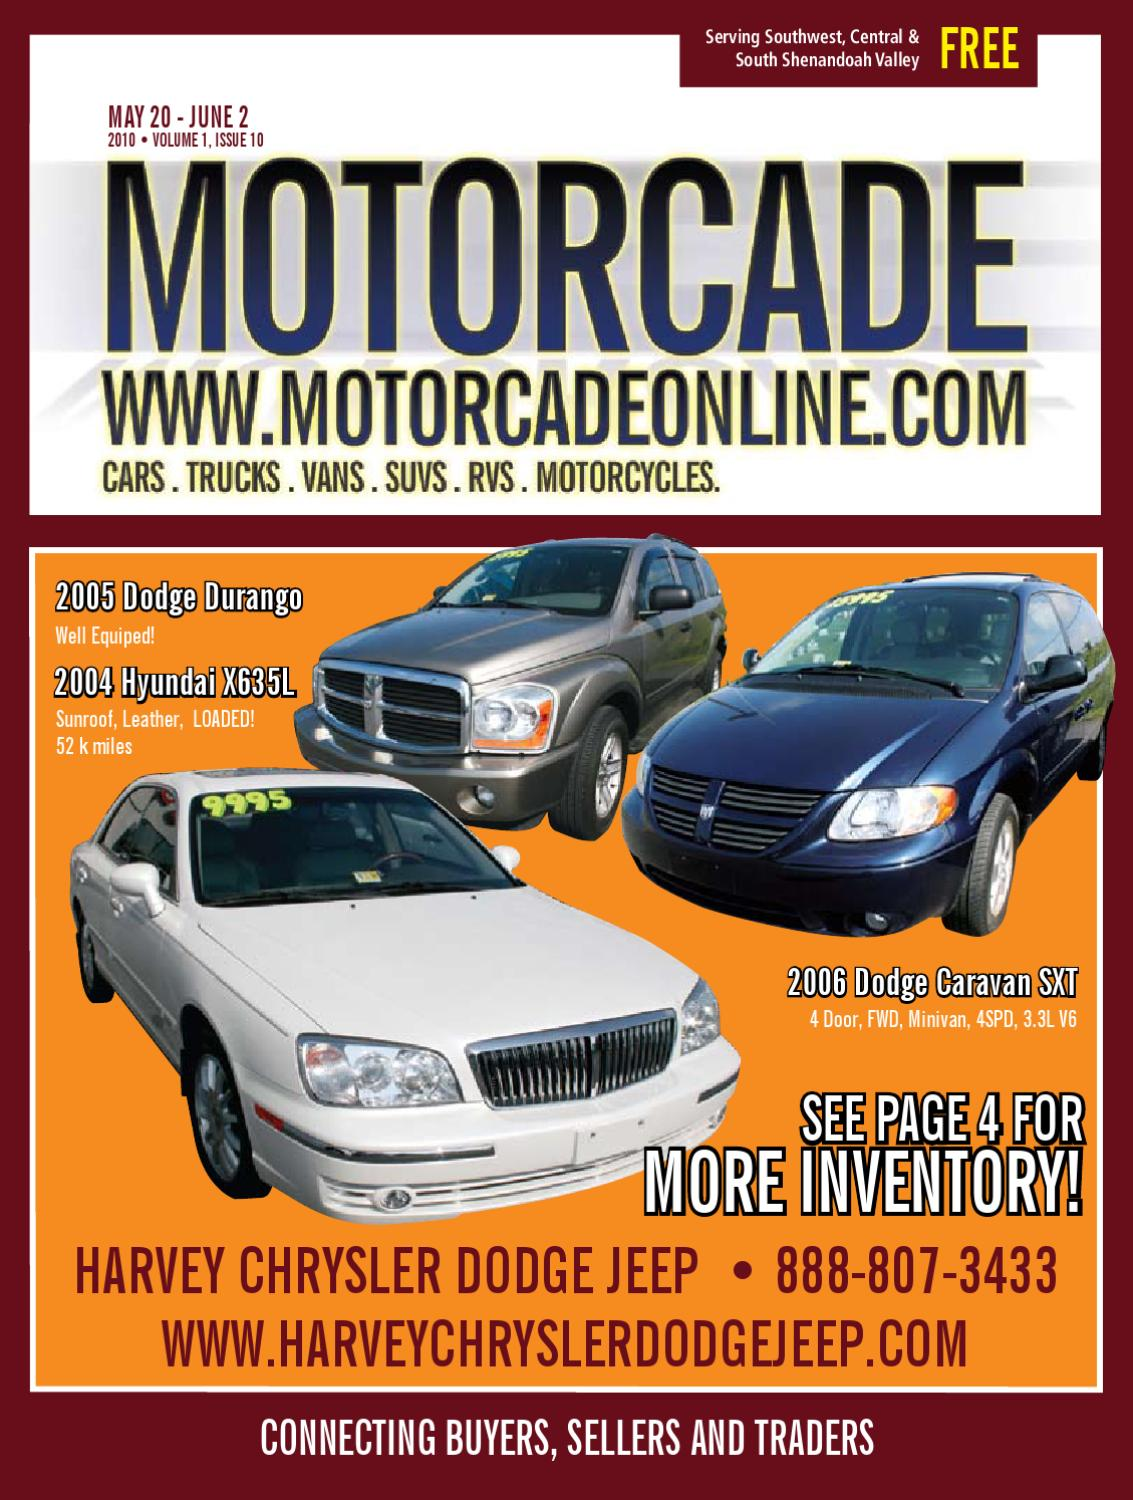 Motorcade Magazine issue 10 by Motorcade Dealer Services - issuu